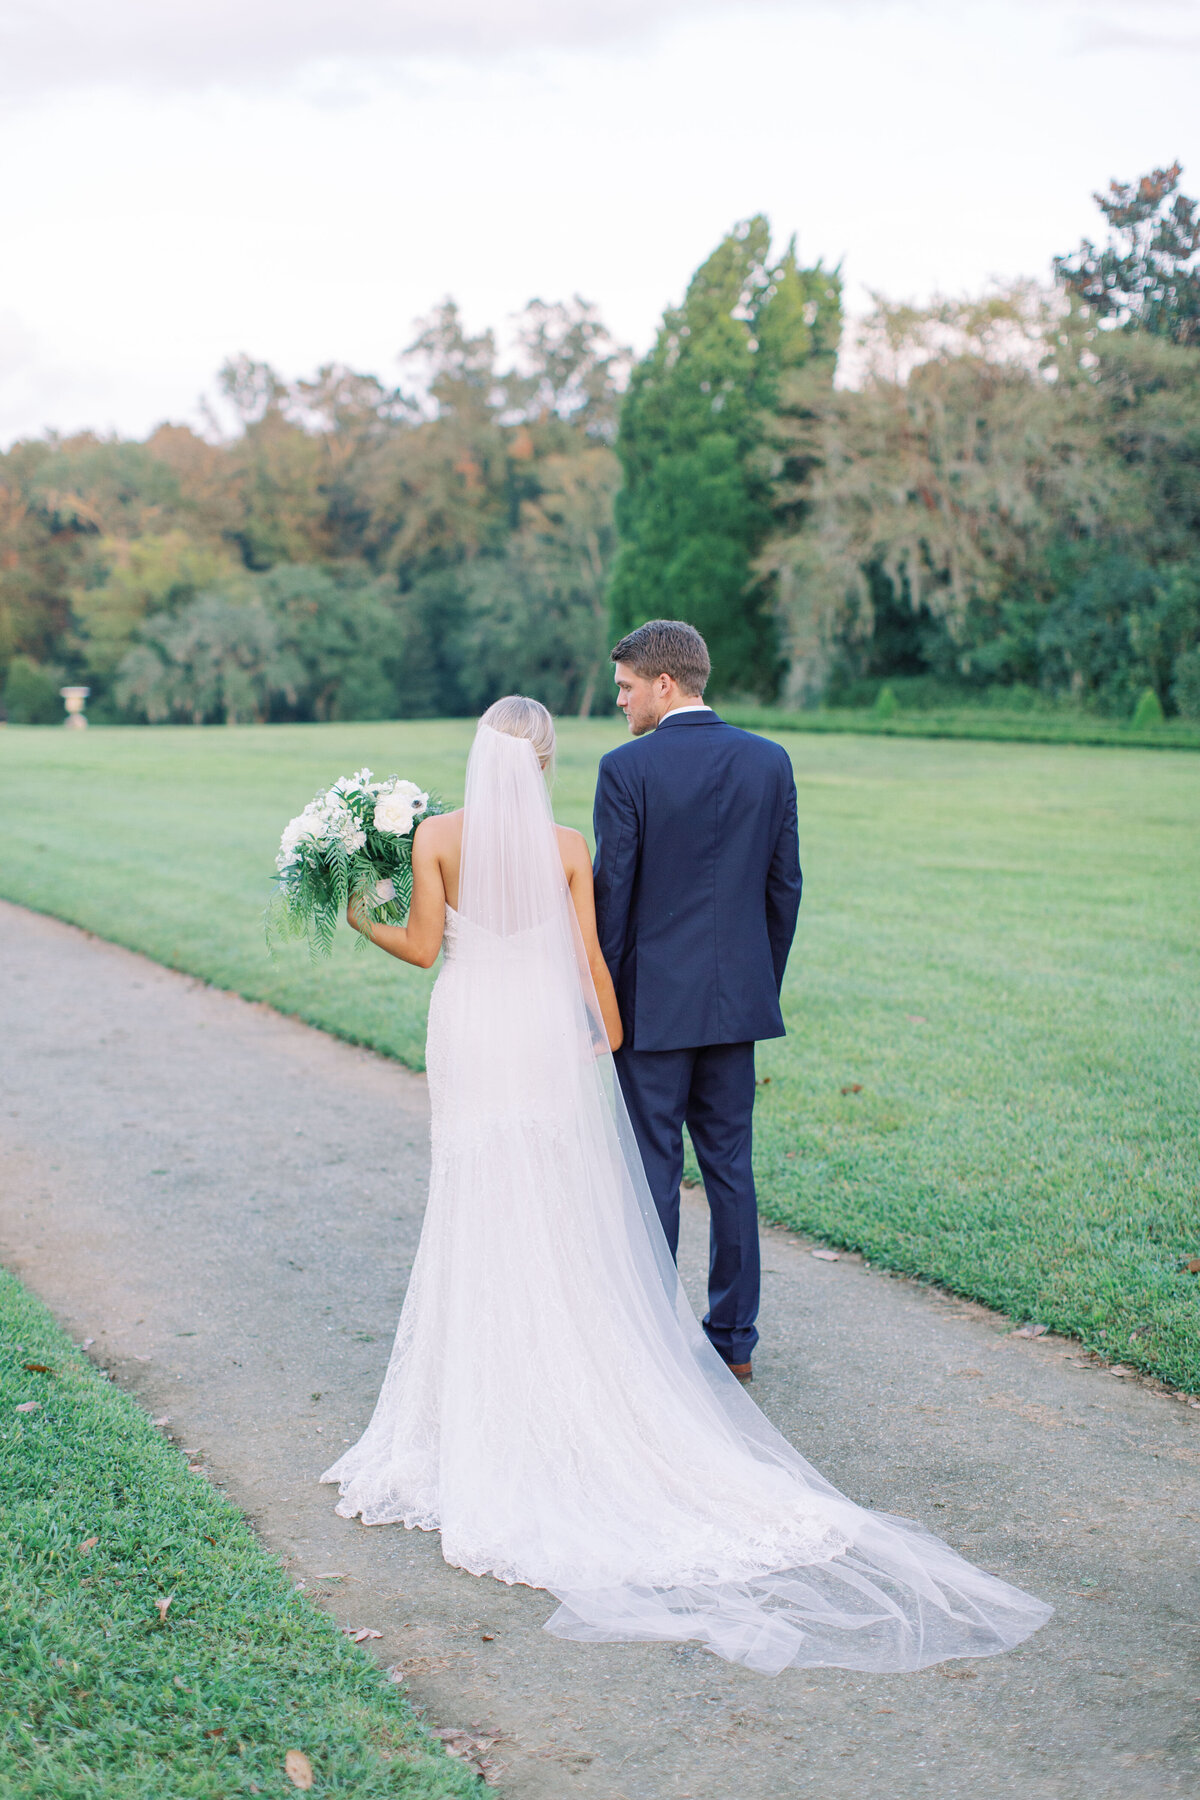 Melton_Wedding__Middleton_Place_Plantation_Charleston_South_Carolina_Jacksonville_Florida_Devon_Donnahoo_Photography__0779